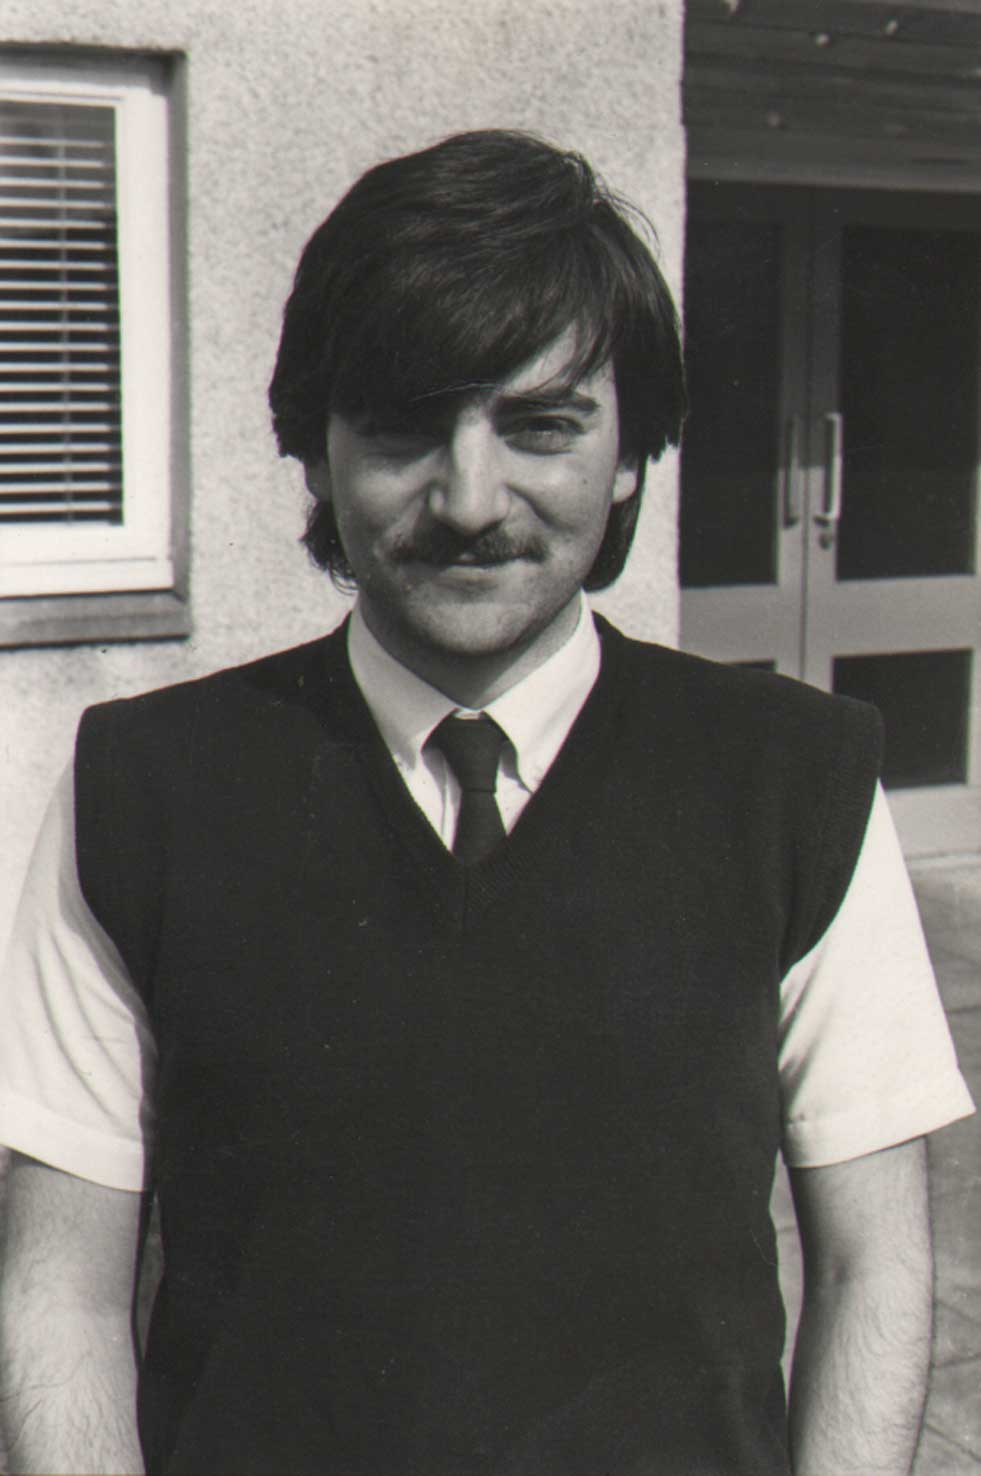 1984 First job. Junior reporter at the Livingston Post